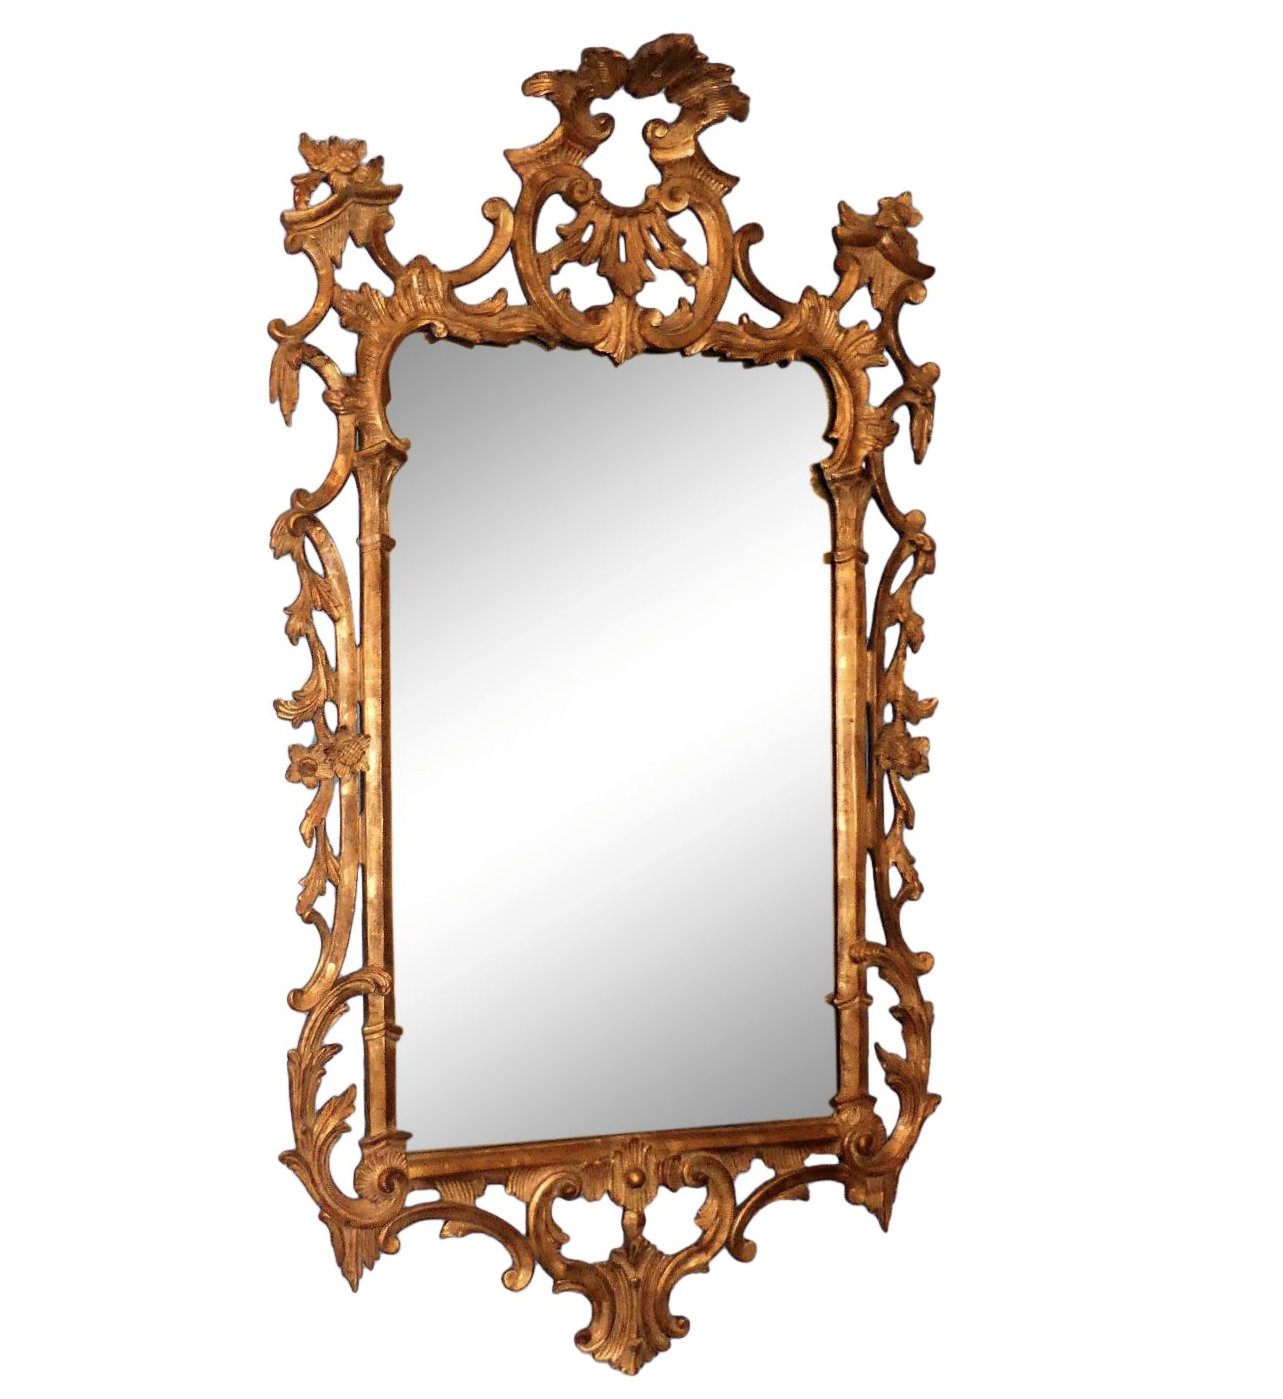 Antique Carved Wood and Distressed Gold Leaf Mirror 32x57 $1,995